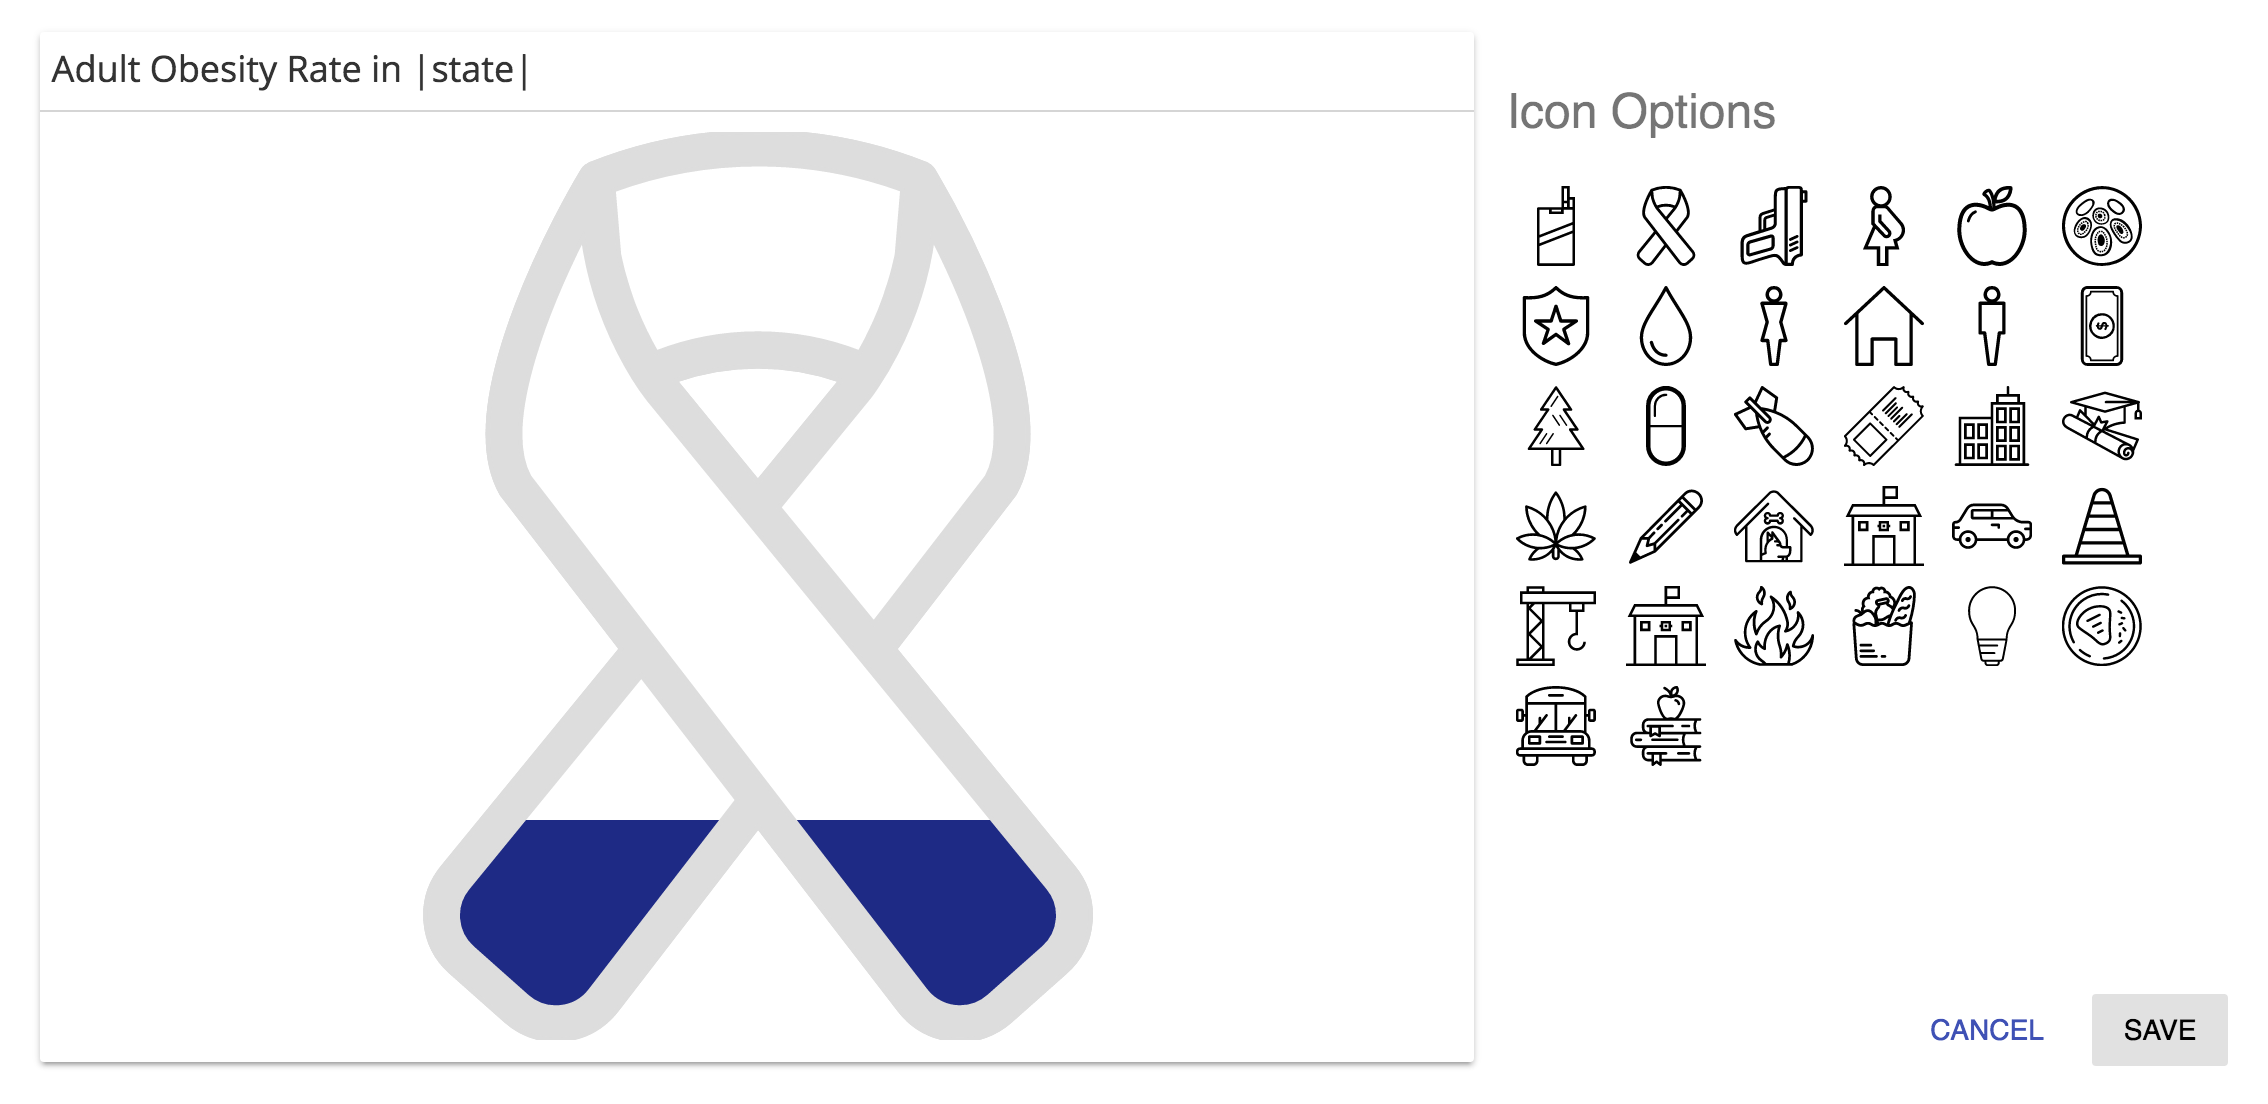 """Whimsical icons can take the place of """"donut charts"""" for showing percentages."""